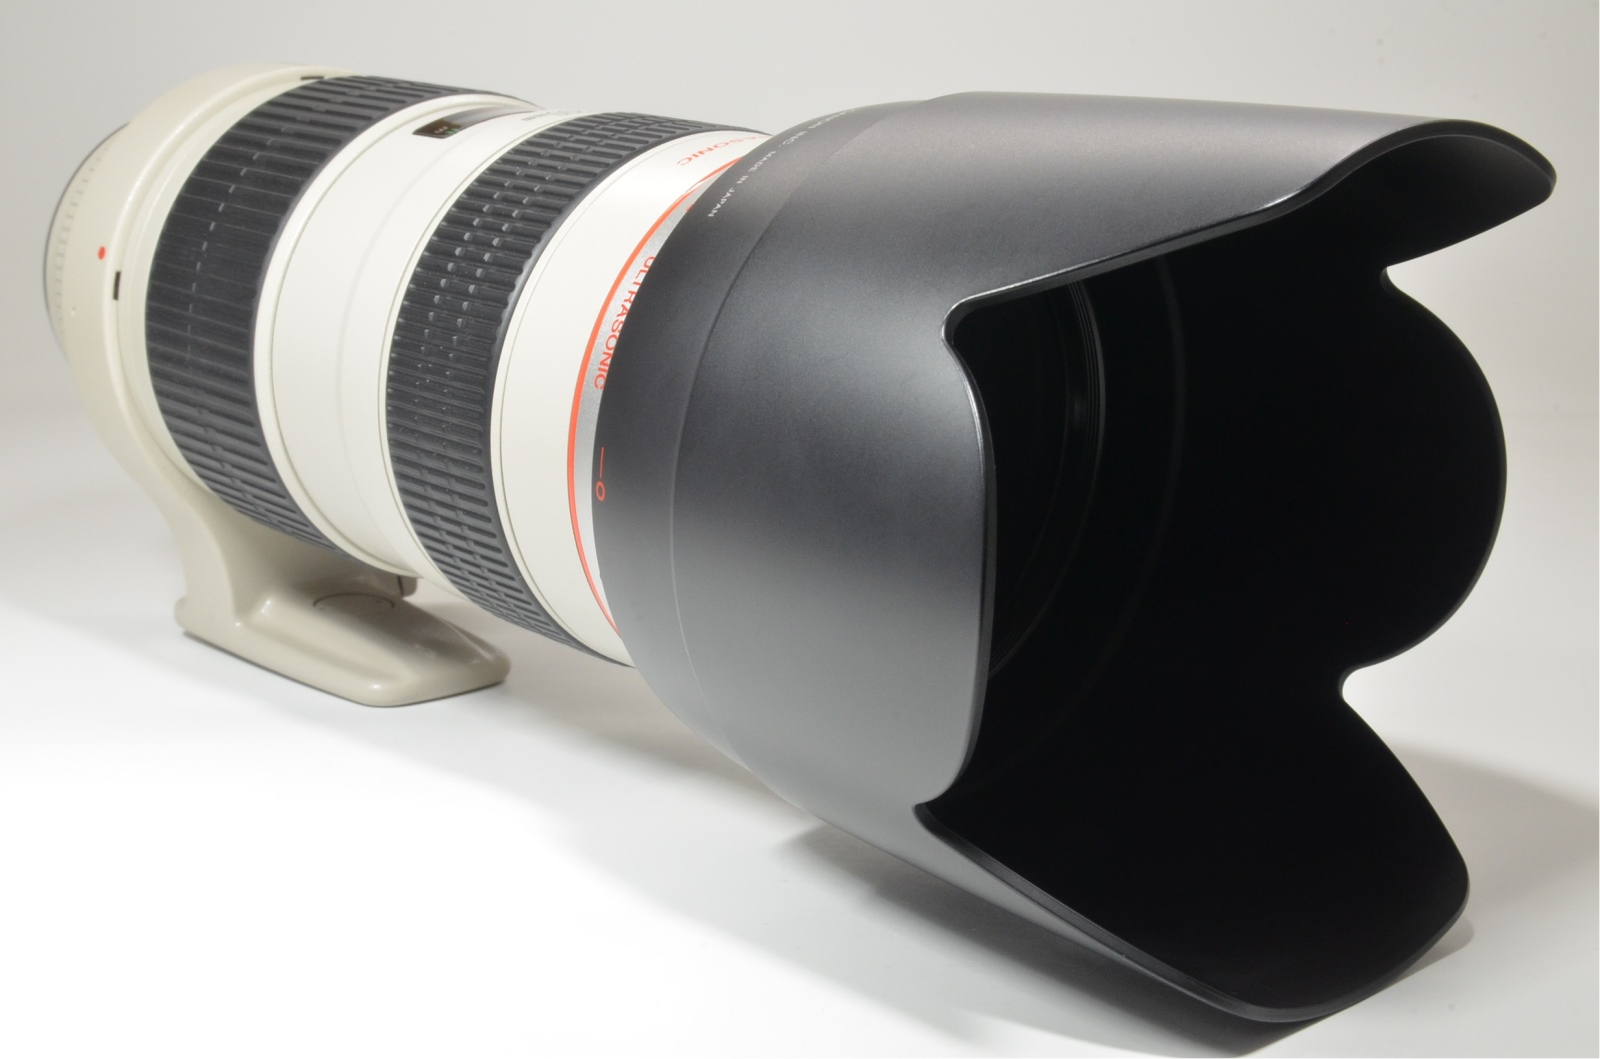 canon ef 70-200mm f/2.8 l usm ultrasonic lens with pl-filter